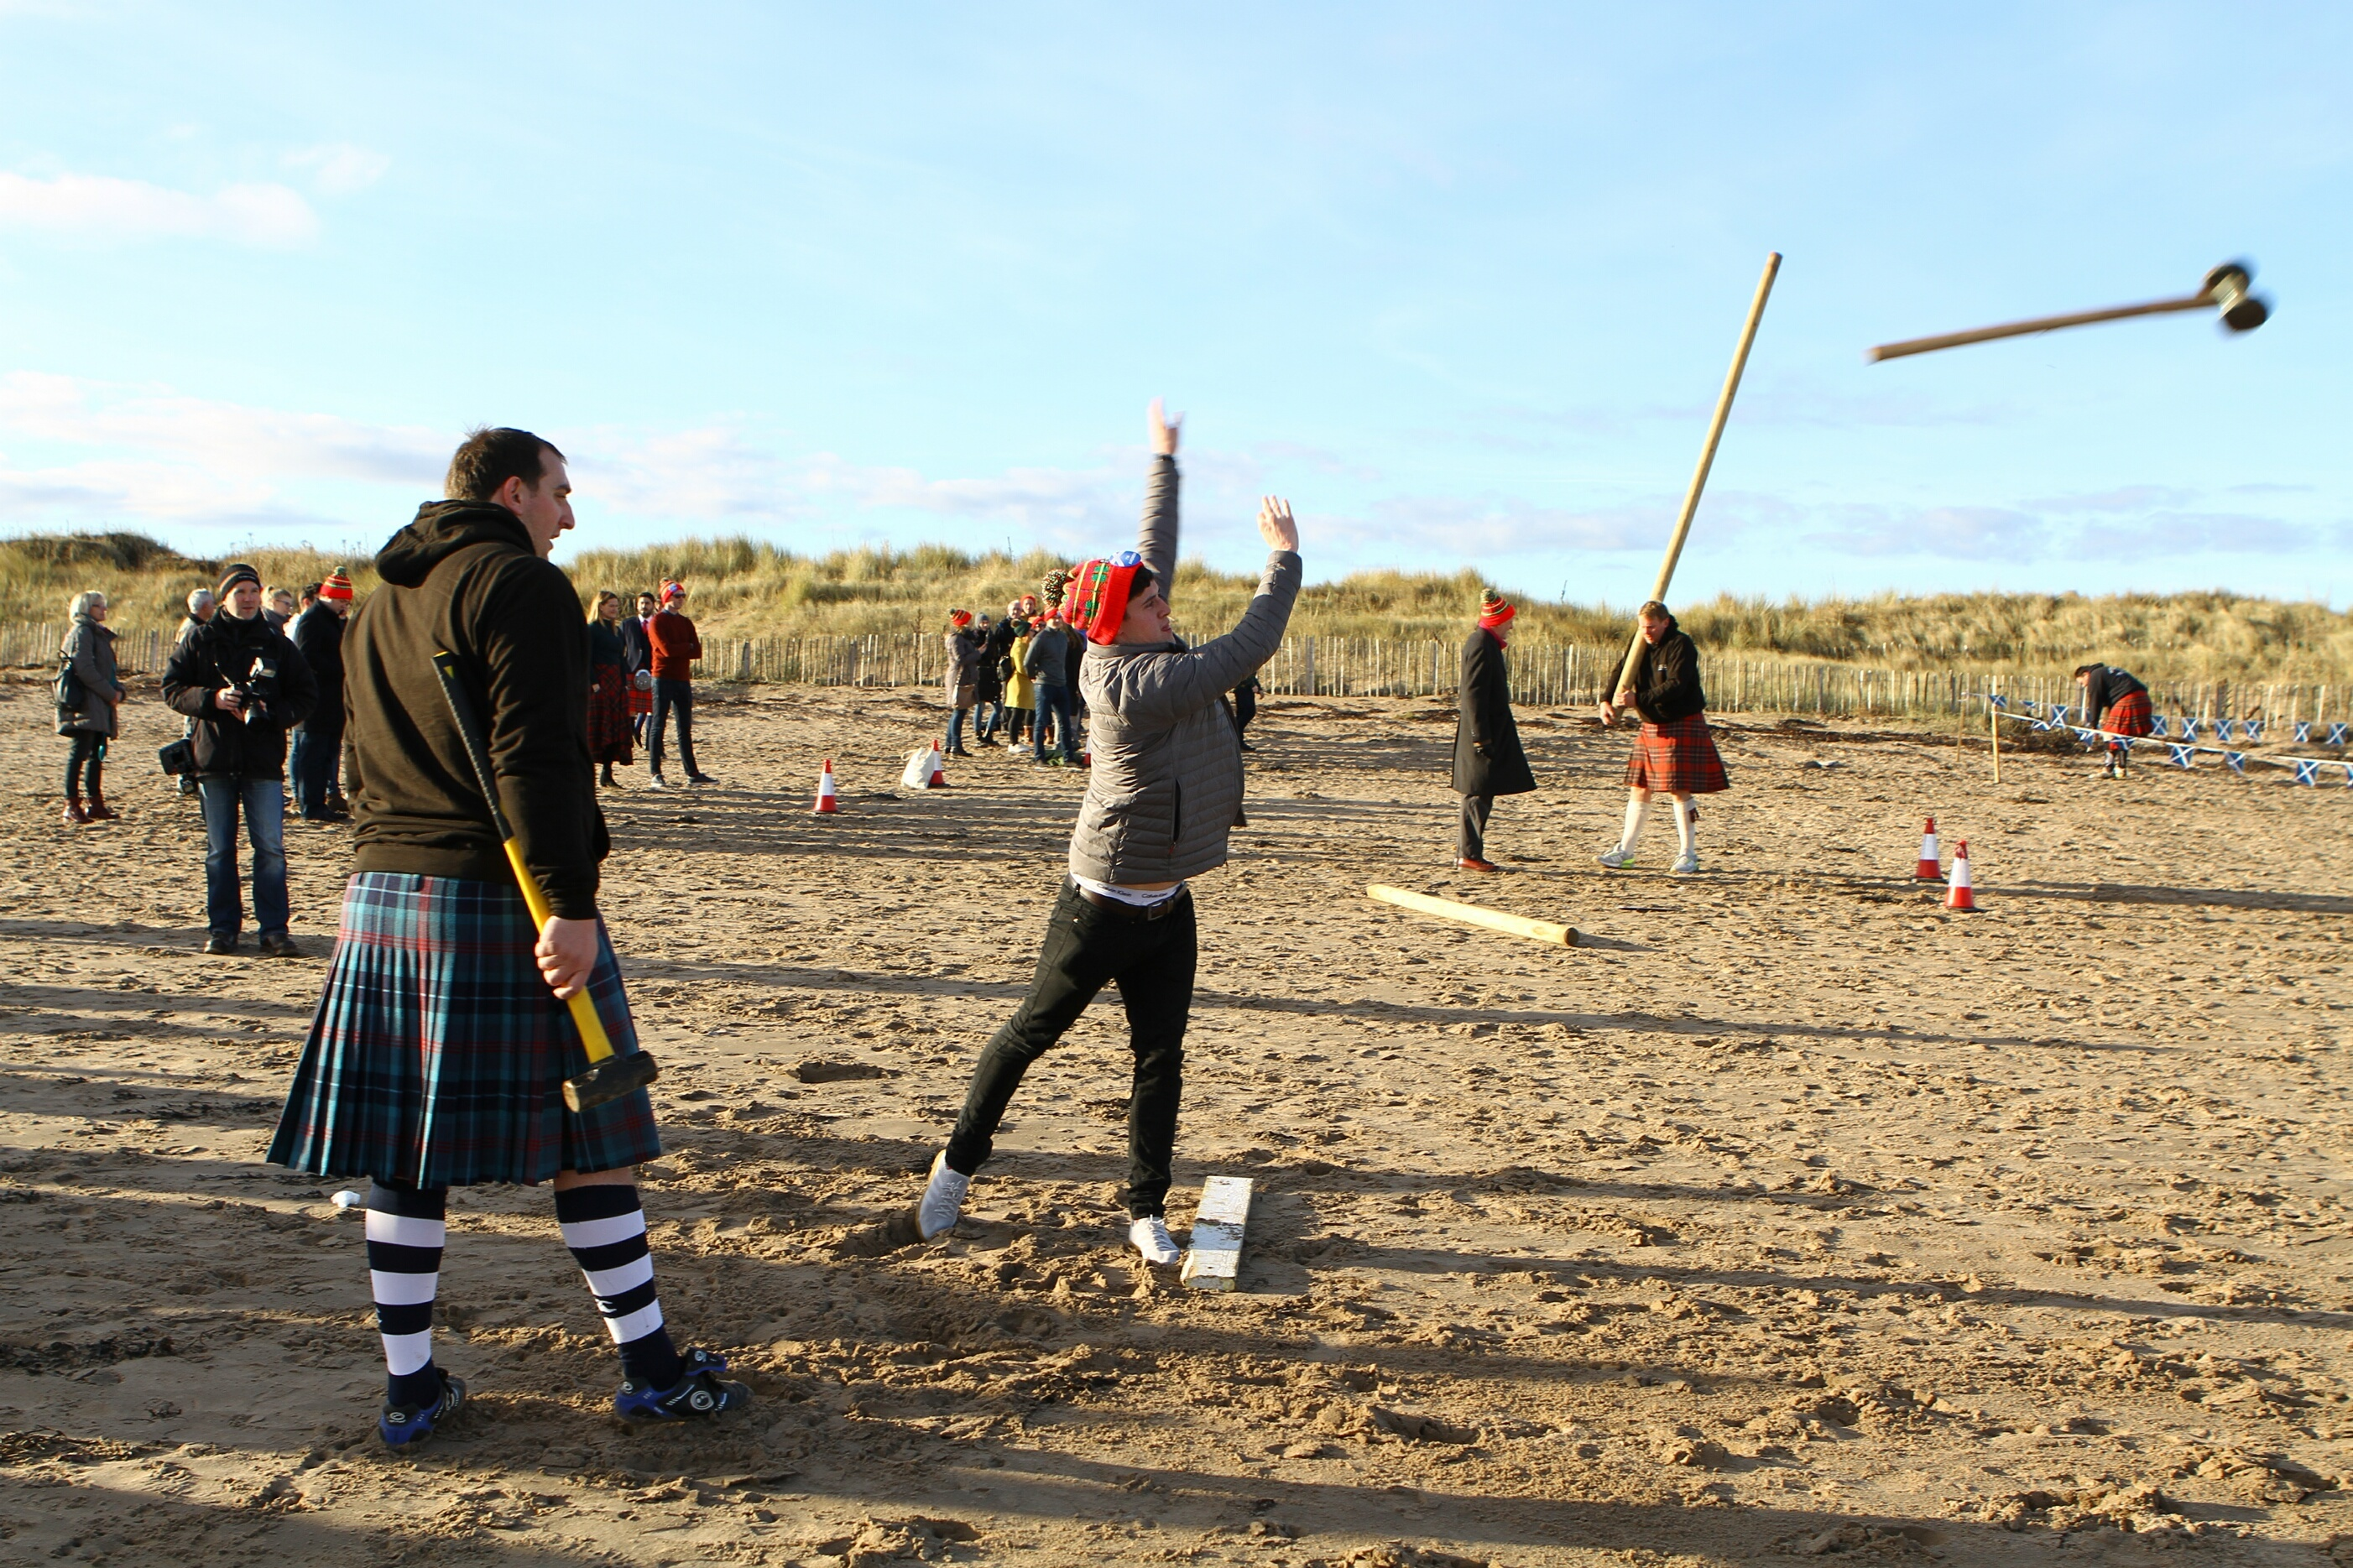 One of the Andrews at the West Sands in St. Andrews, taking part in the Highland Games.